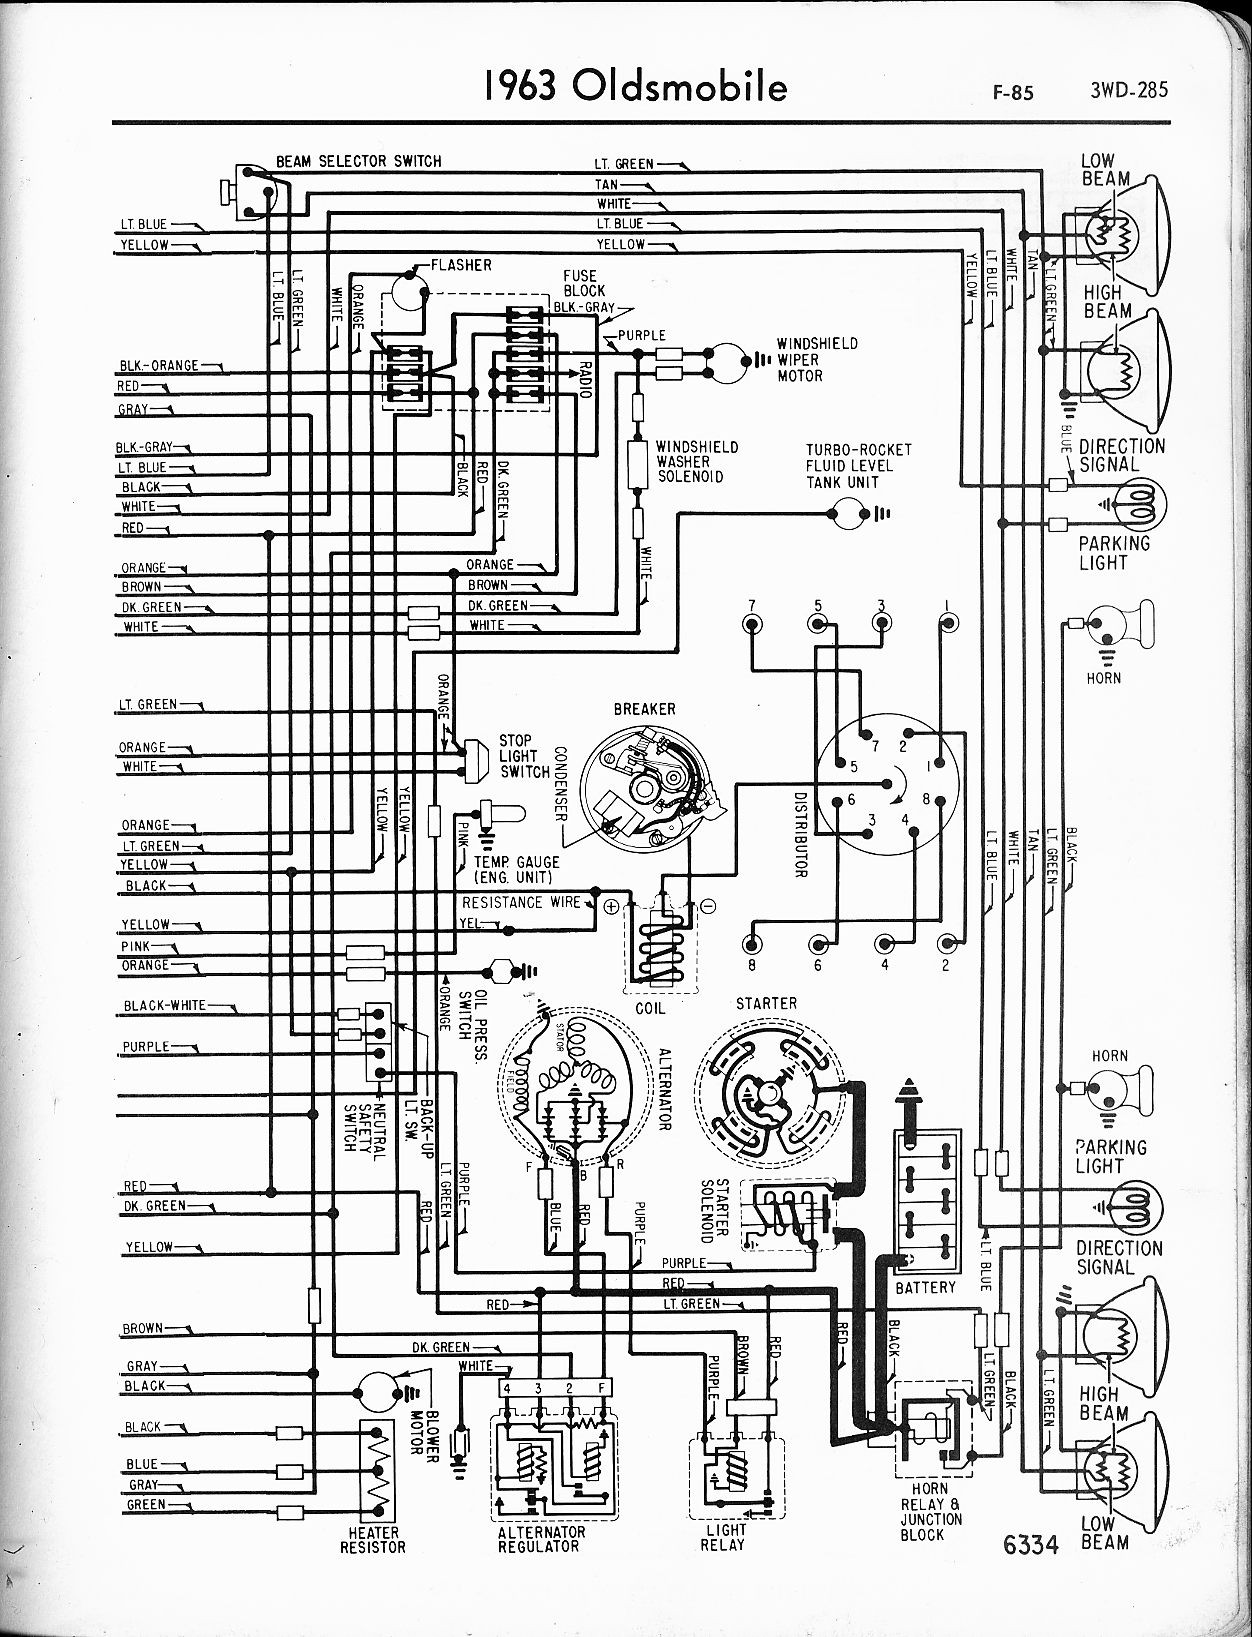 1997 Pontiac Grand Am Engine Diagram 1jz Wiring Besides 1996 Oldsmobile Cutlass Of